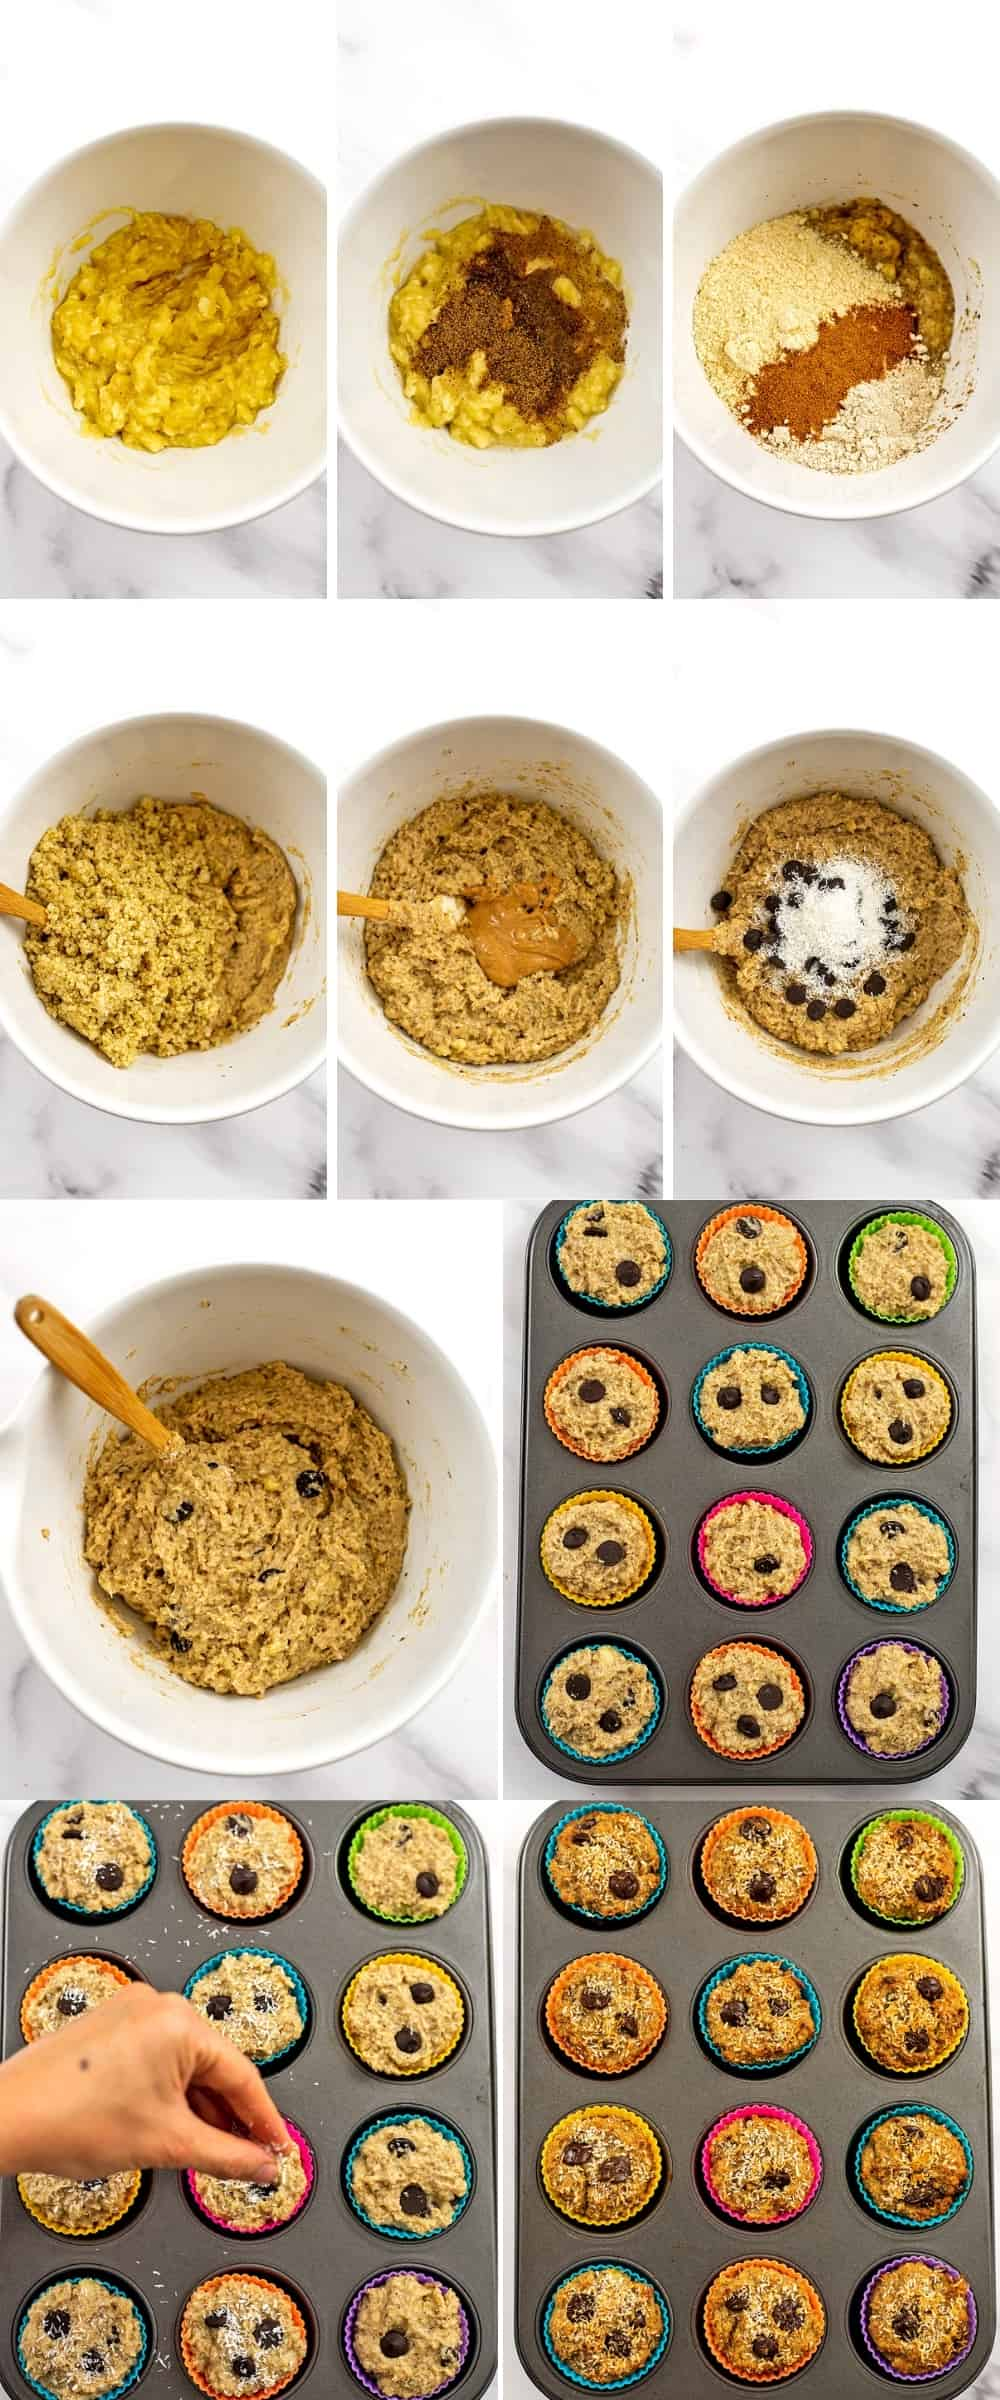 Instructions on how to make quinoa banana muffins.